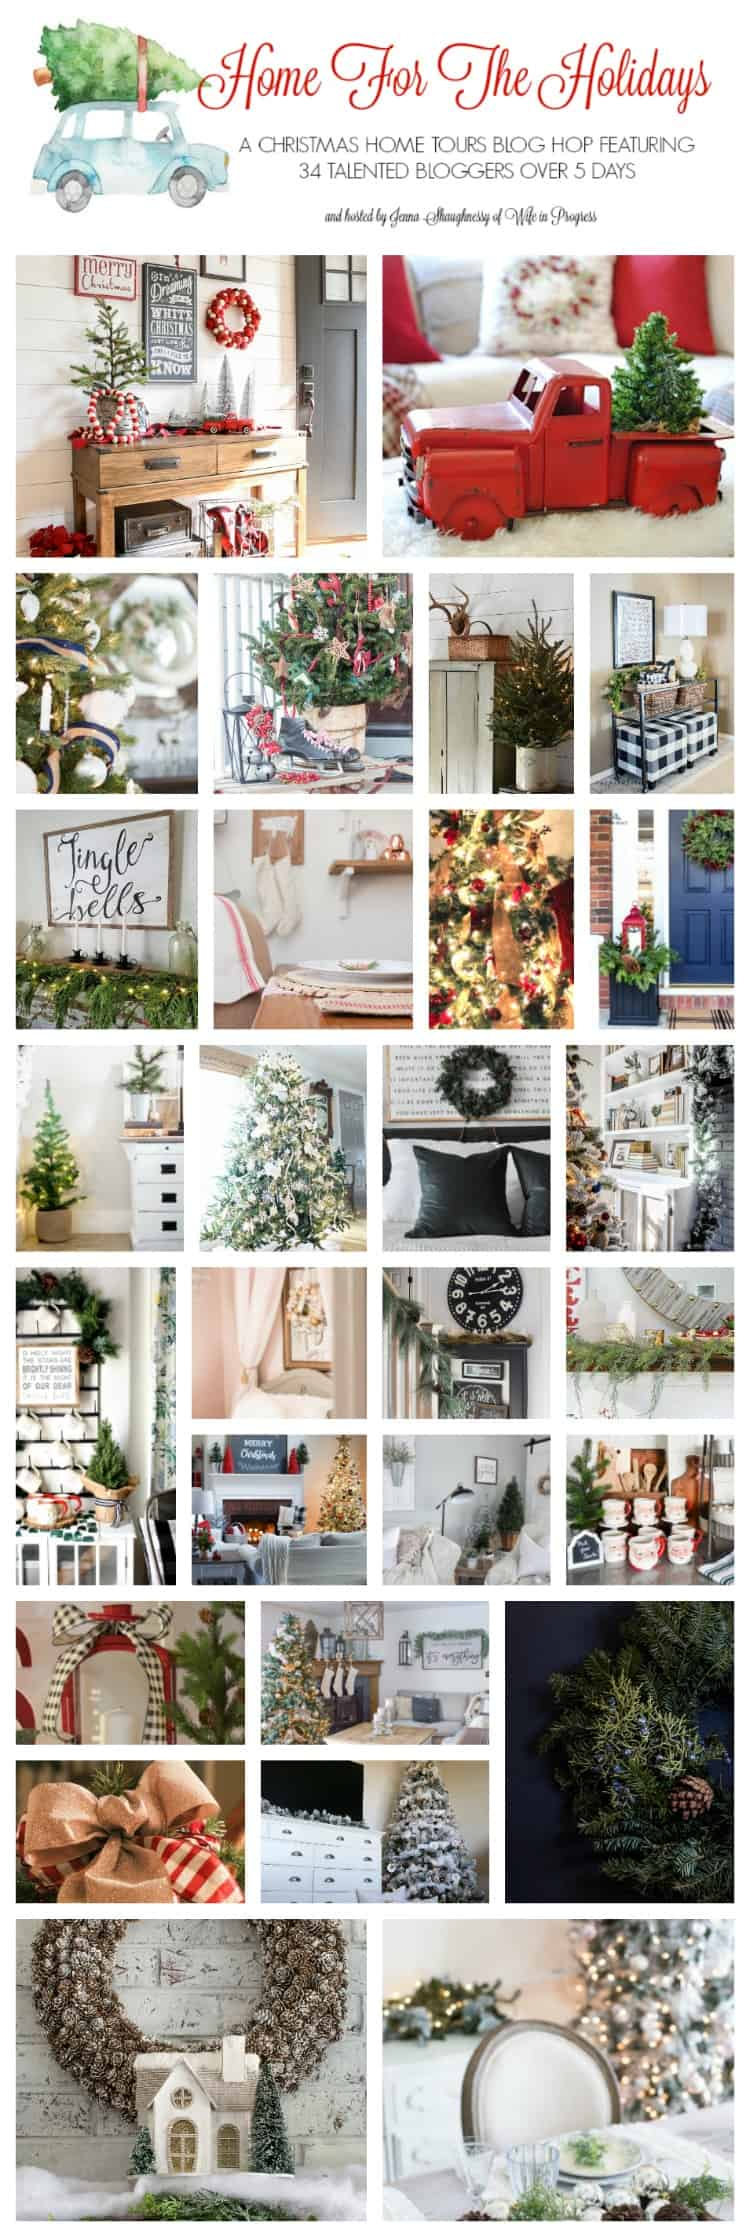 34 talented bloggers share their beautiful and elegant Christmas ideas for the home. Tour their homes and be inspired to decorate your own this Christmas!